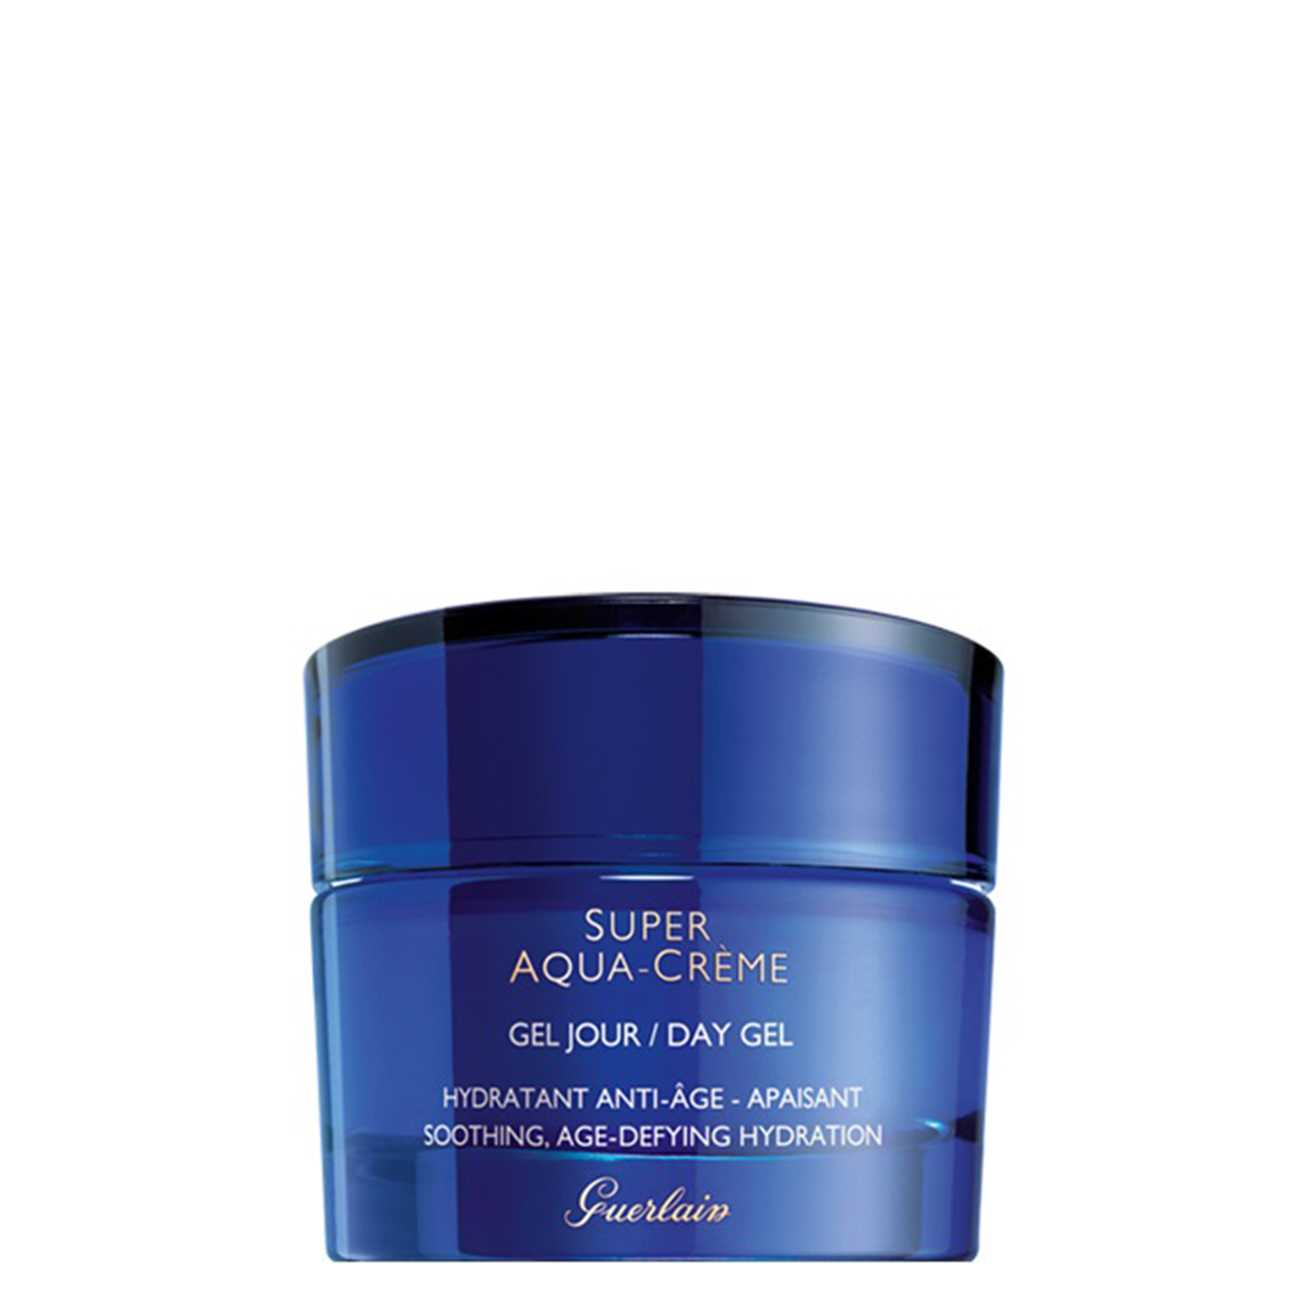 SUPER ACQUA COMFORT CREAM 50 ML imagine produs